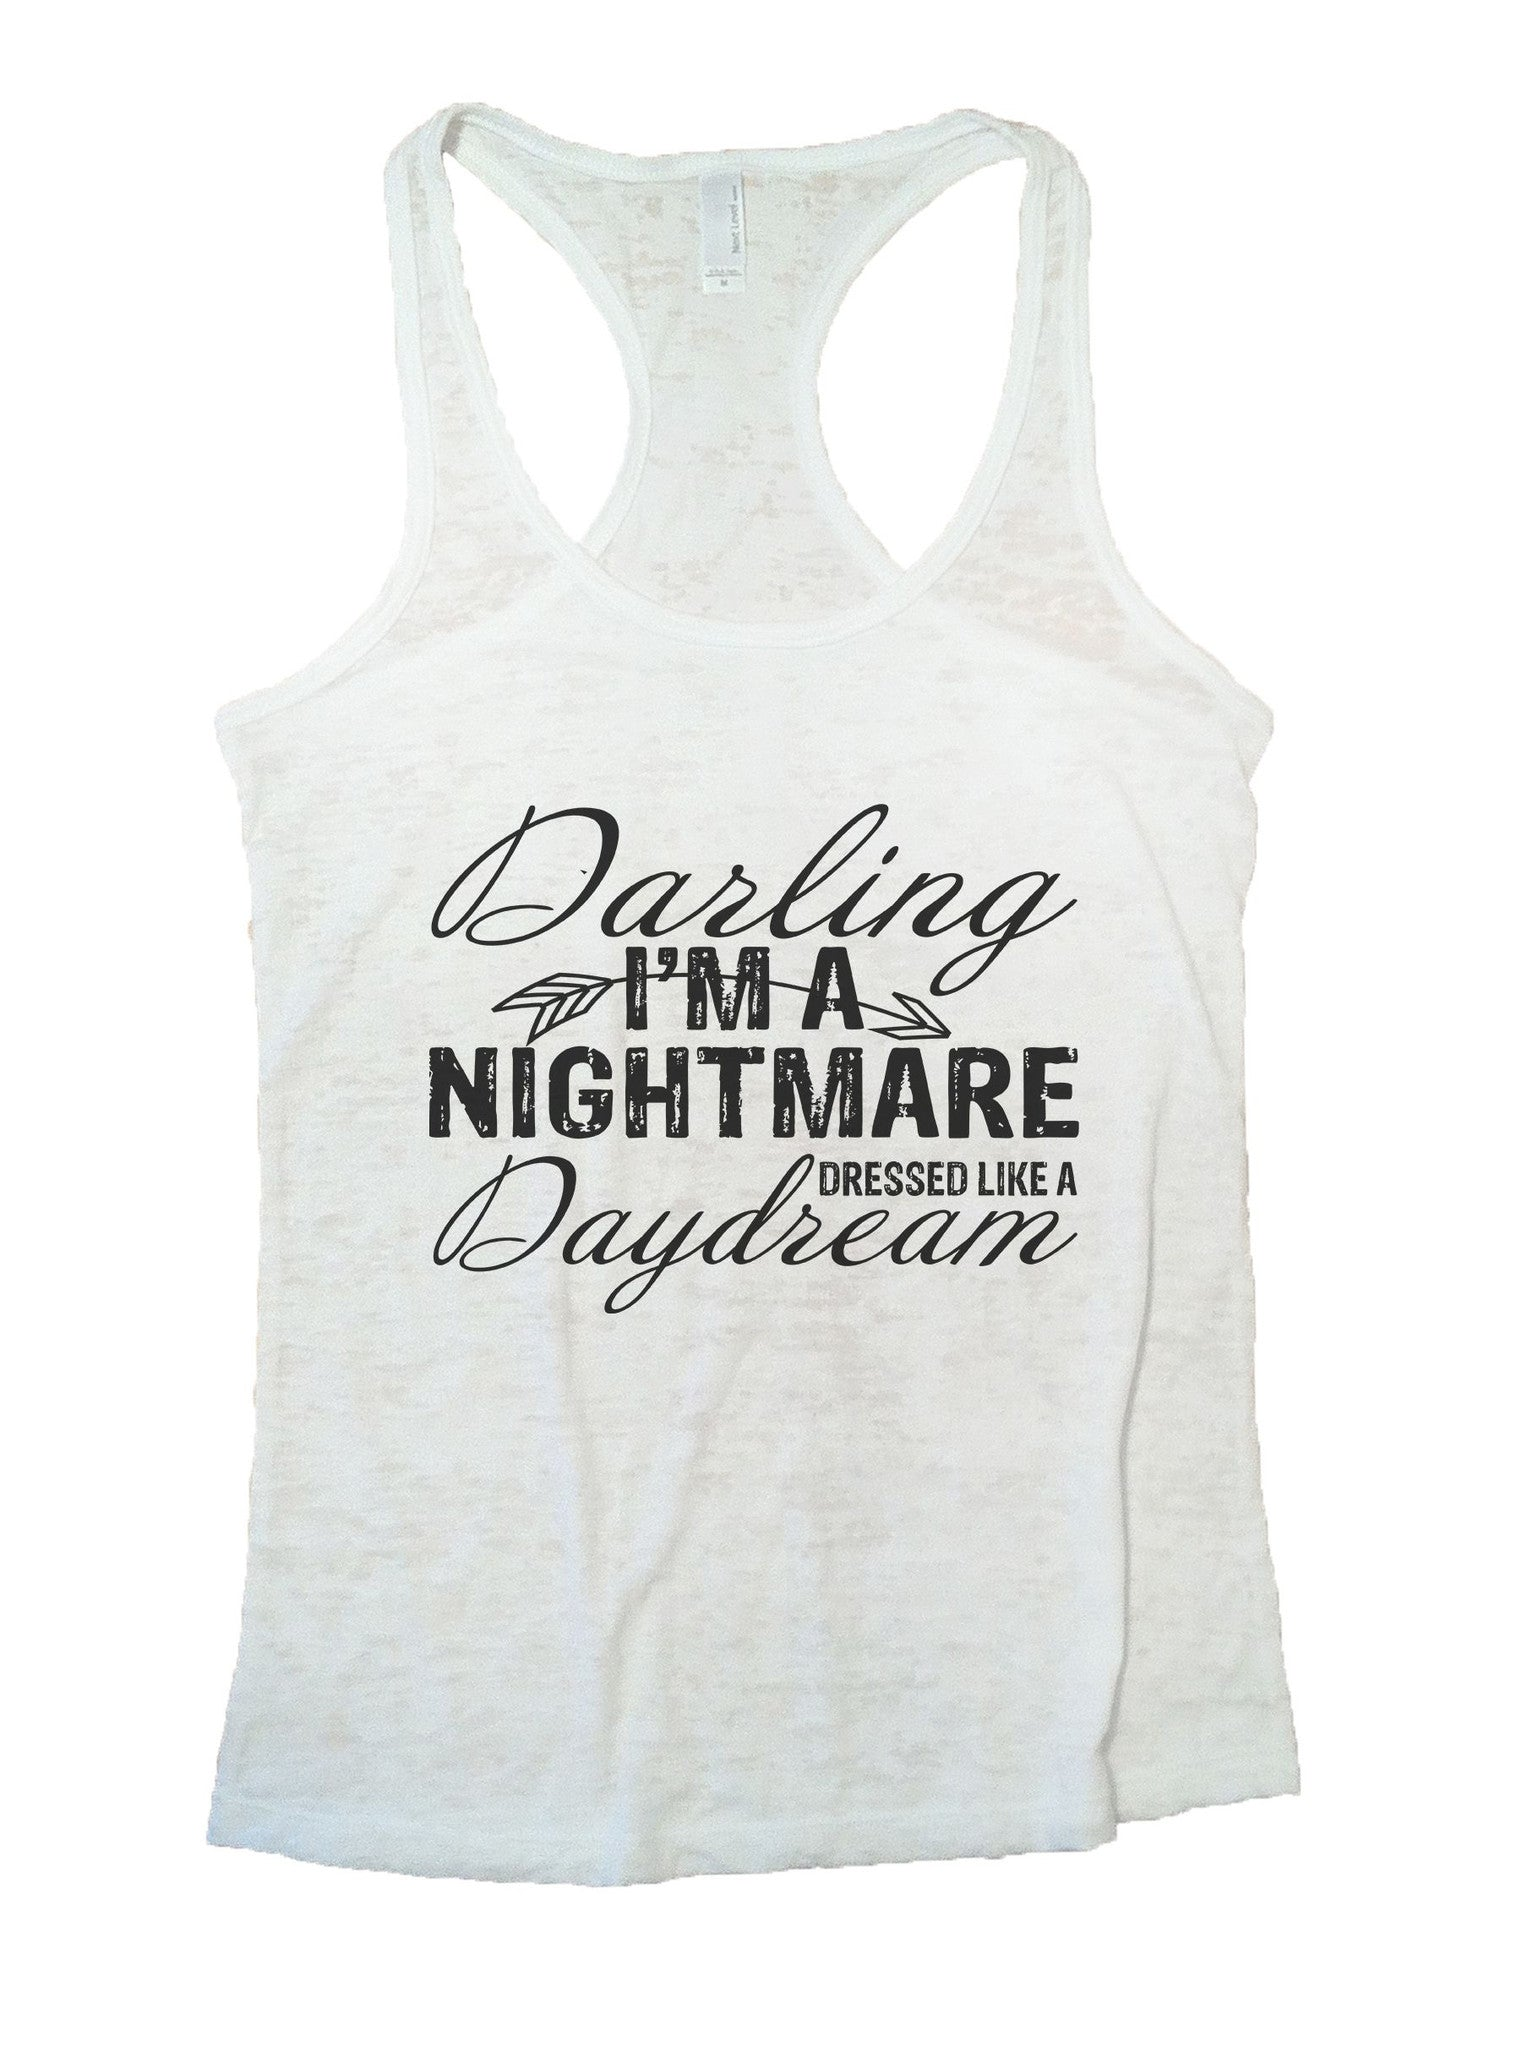 Darling I'm A Nightmare Dressed Like A Daydream Burnout Tank Top By BurnoutTankTops.com - 930 - Funny Shirts Tank Tops Burnouts and Triblends  - 6